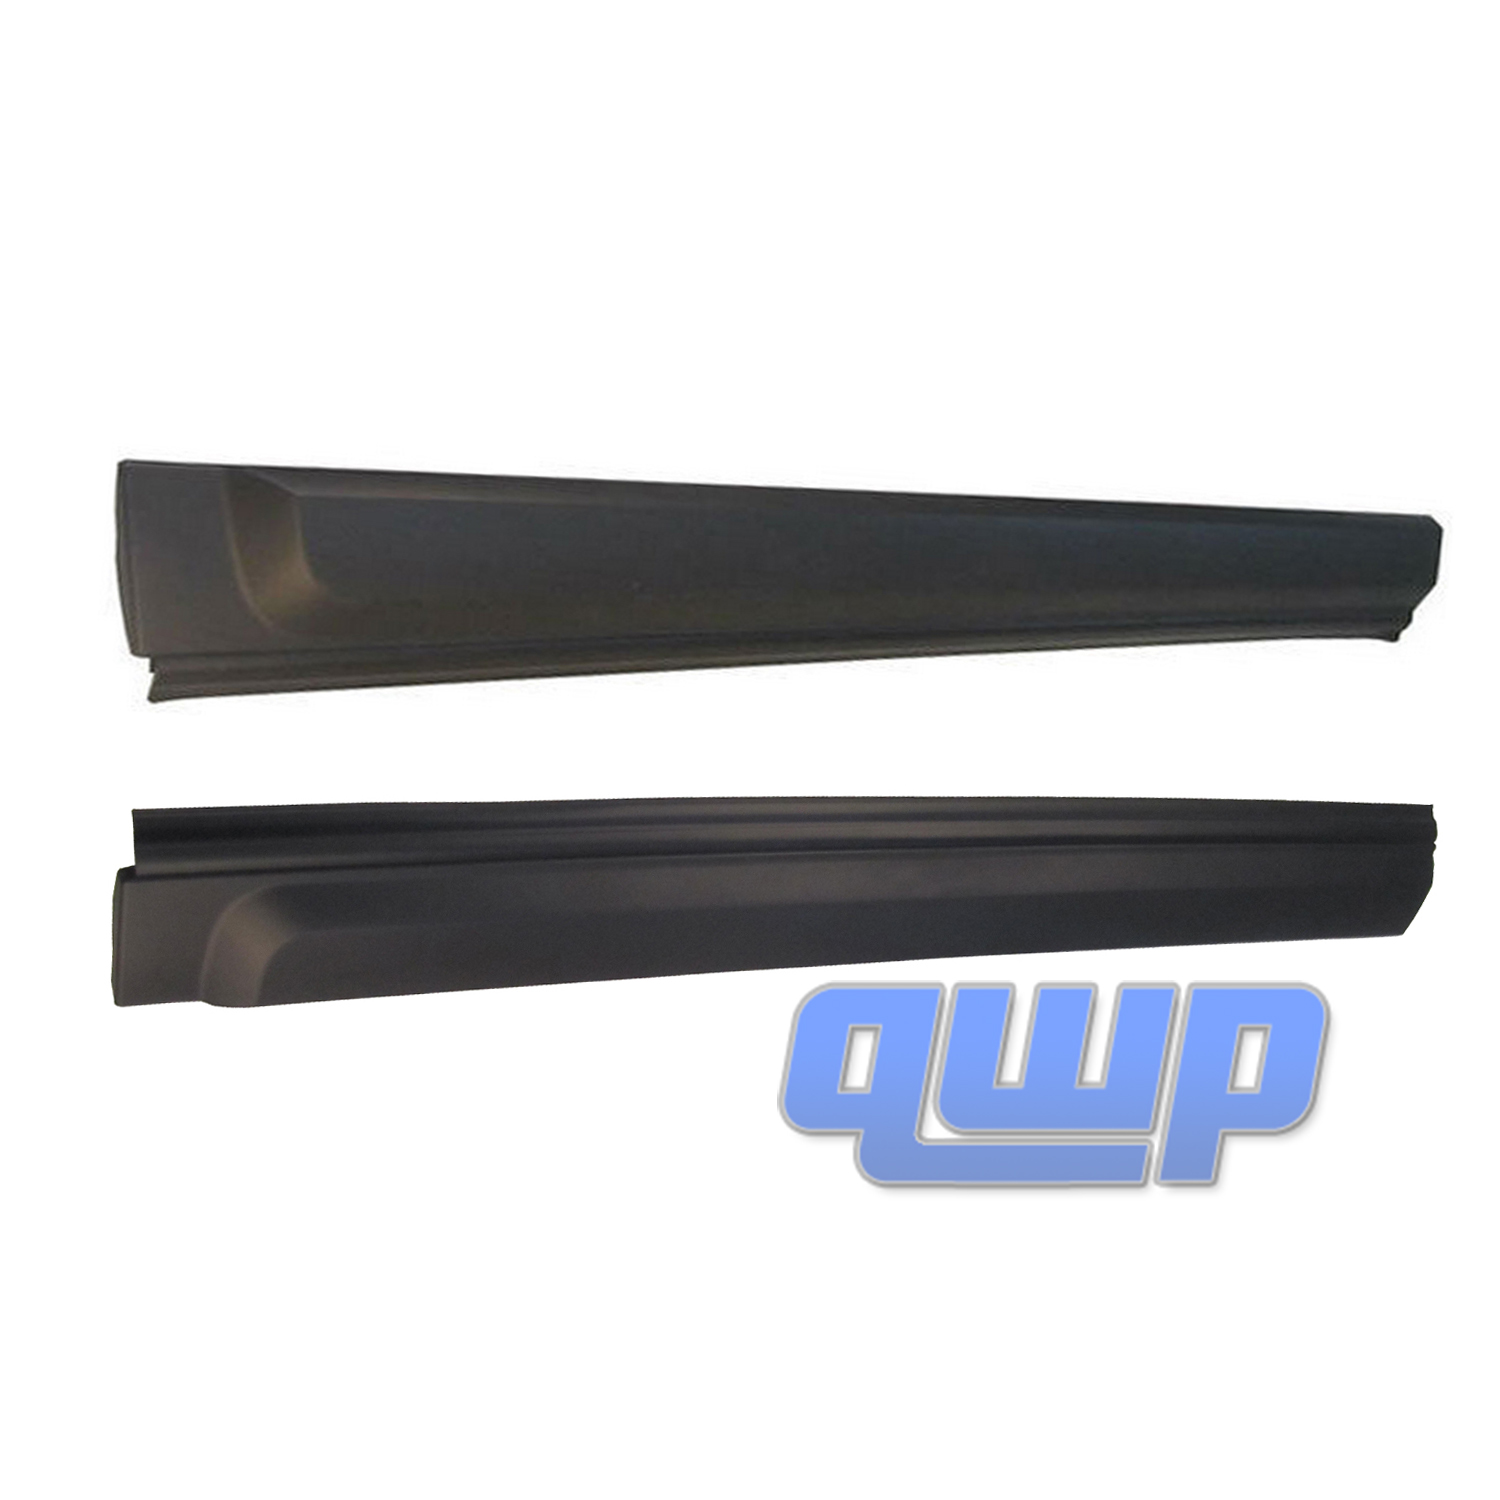 DGP000124PCL Front Right Side Outside Door Moulding Mounting Clip for Land Rover LR3 LR4 Mew